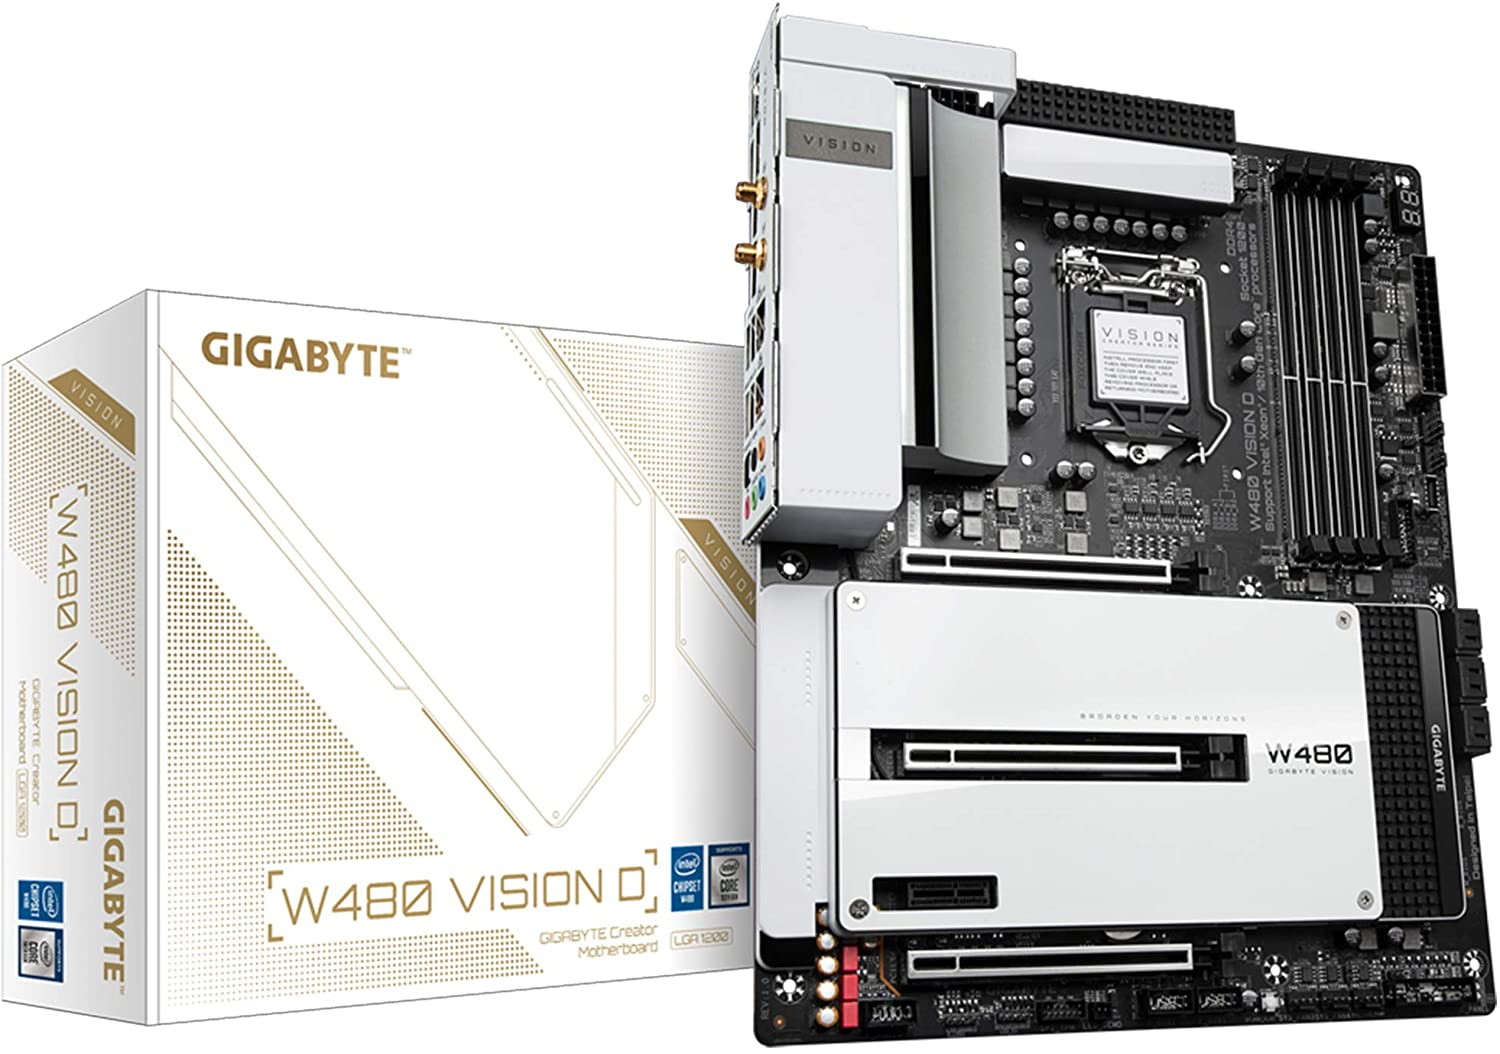 Gigabyte Z590I VISION D LGA 1200 Mini-ITX Motherboard Review